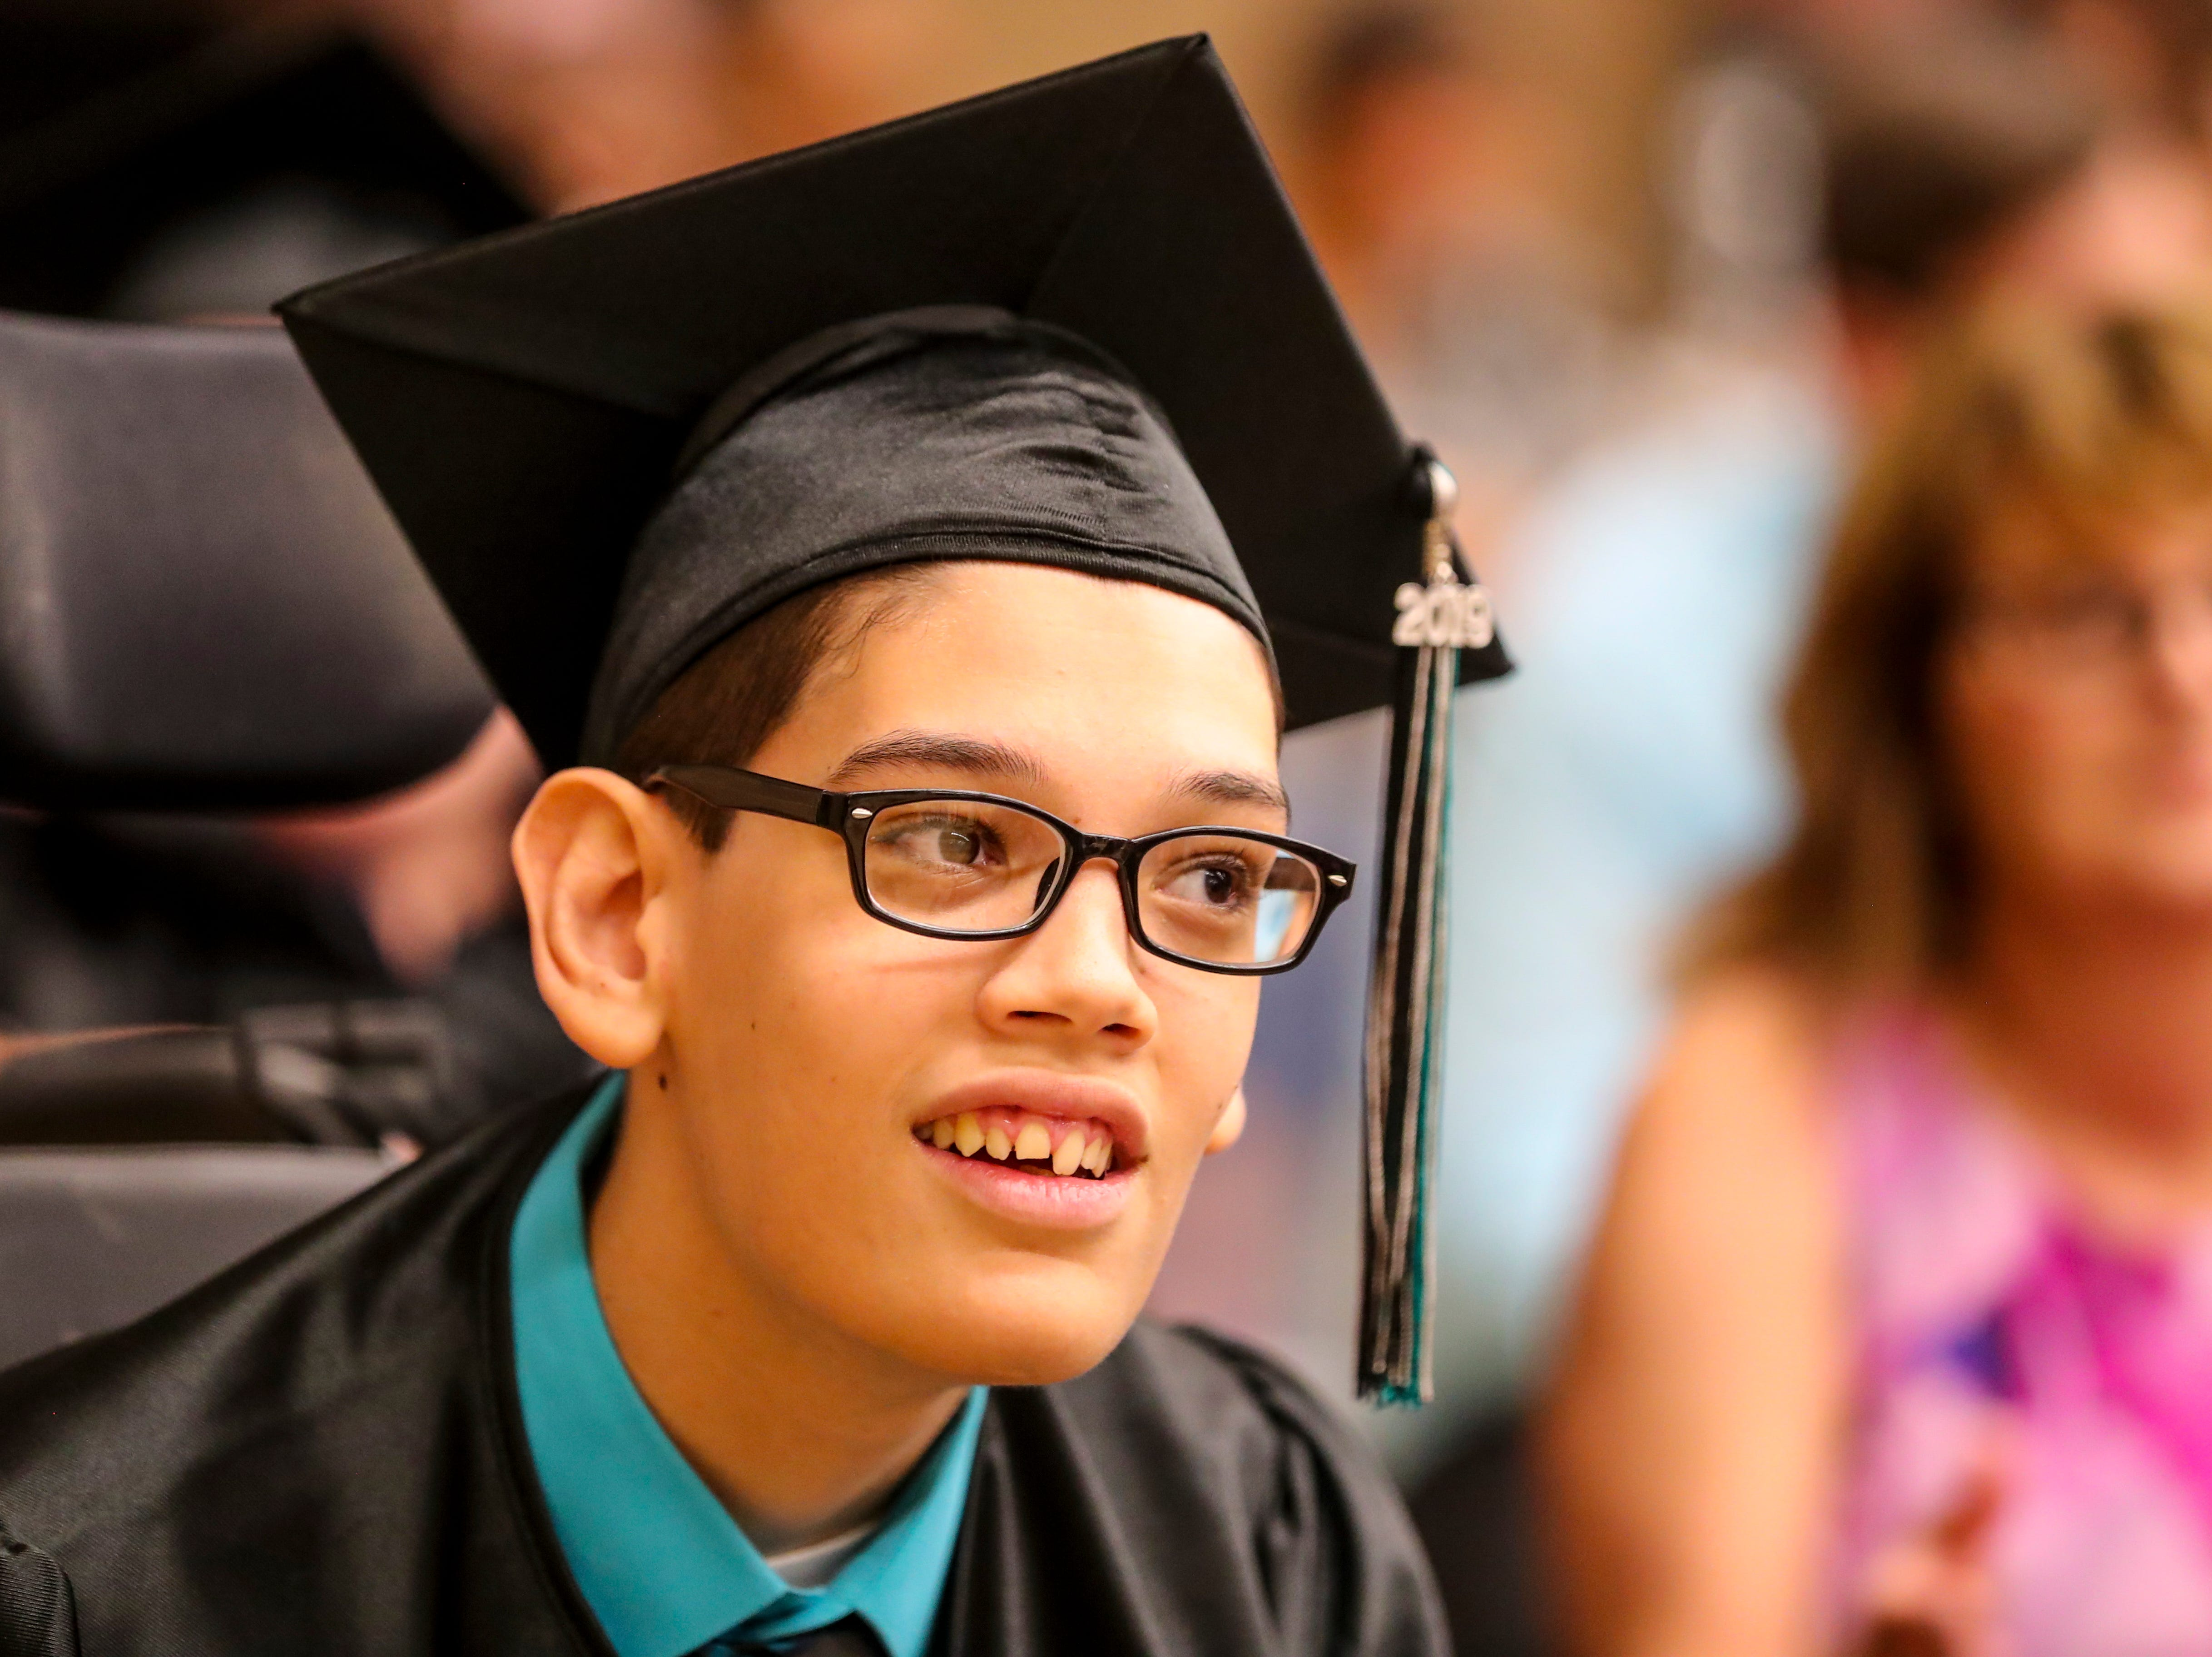 David Upton graduated with his class. 13 students at Buckingham Exceptional Student Center graduated during a ceremony in their honor. Family, friends, and staff were there to honor the graduates.